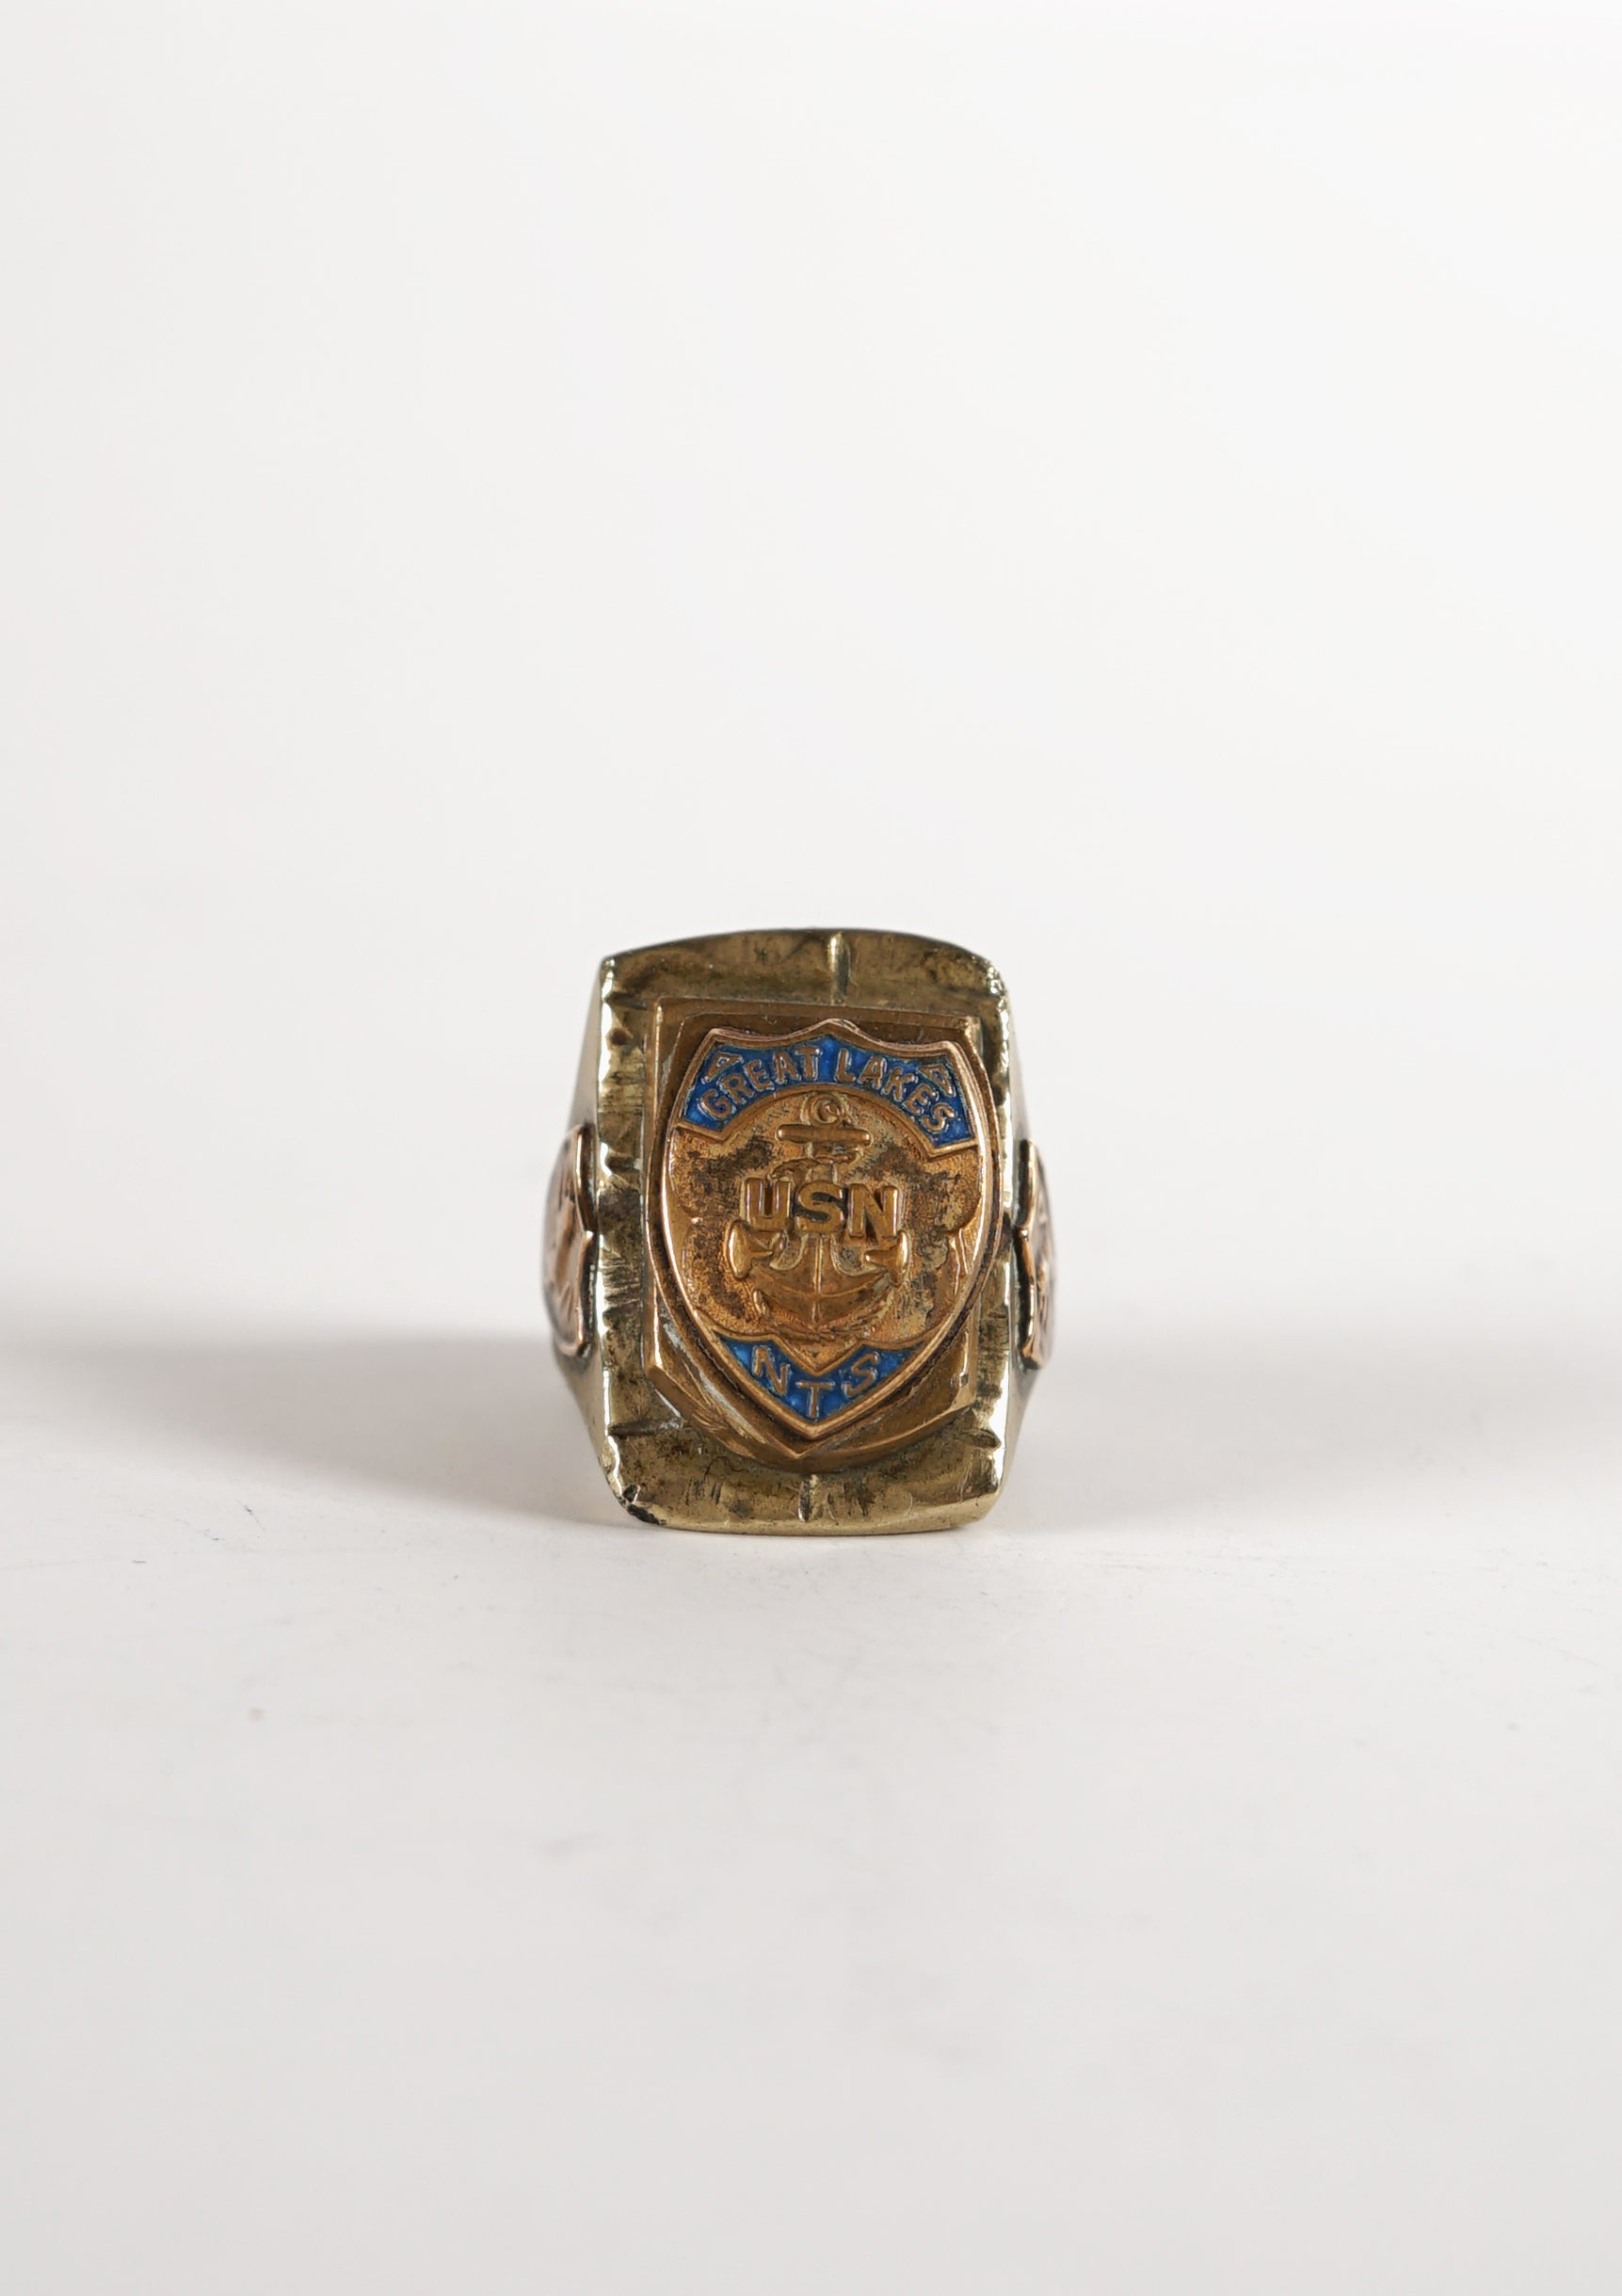 Mexican Biker Ring / USN